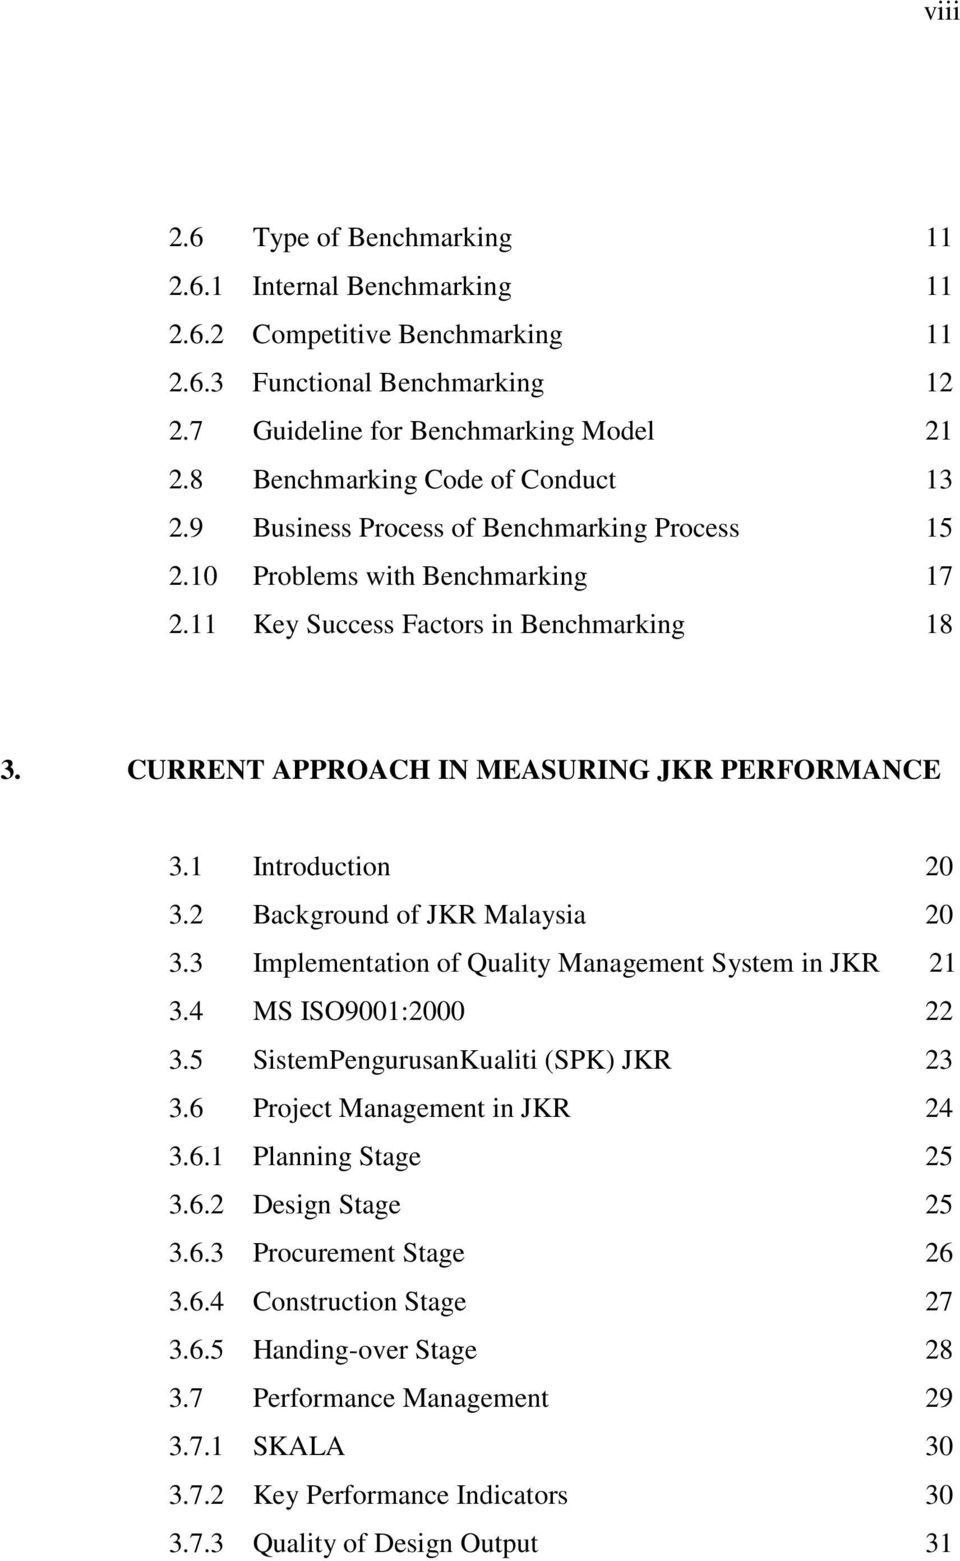 CURRENT APPROACH IN MEASURING JKR PERFORMANCE 3.1 Introduction 20 3.2 Background of JKR Malaysia 20 3.3 Implementation of Quality Management System in JKR 21 3.4 MS ISO9001:2000 22 3.